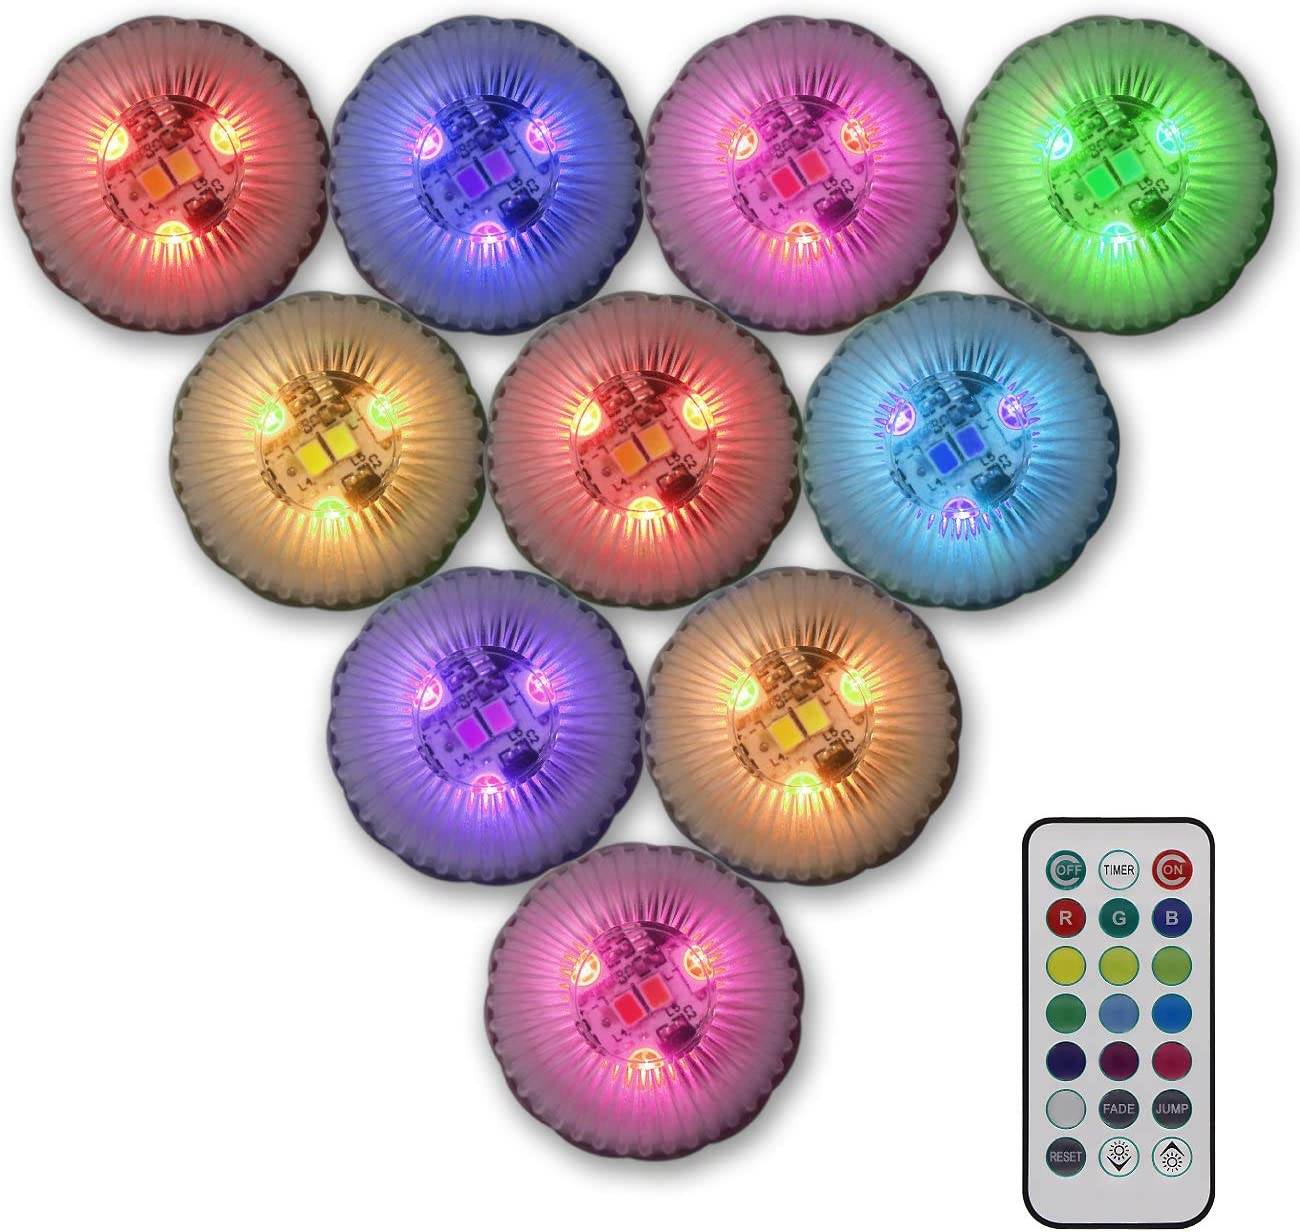 Tripop Color Changing LED Vase Lights, Battery Operated Mini RGB LED Tea Lights Waterproof with Remote 10 Pack